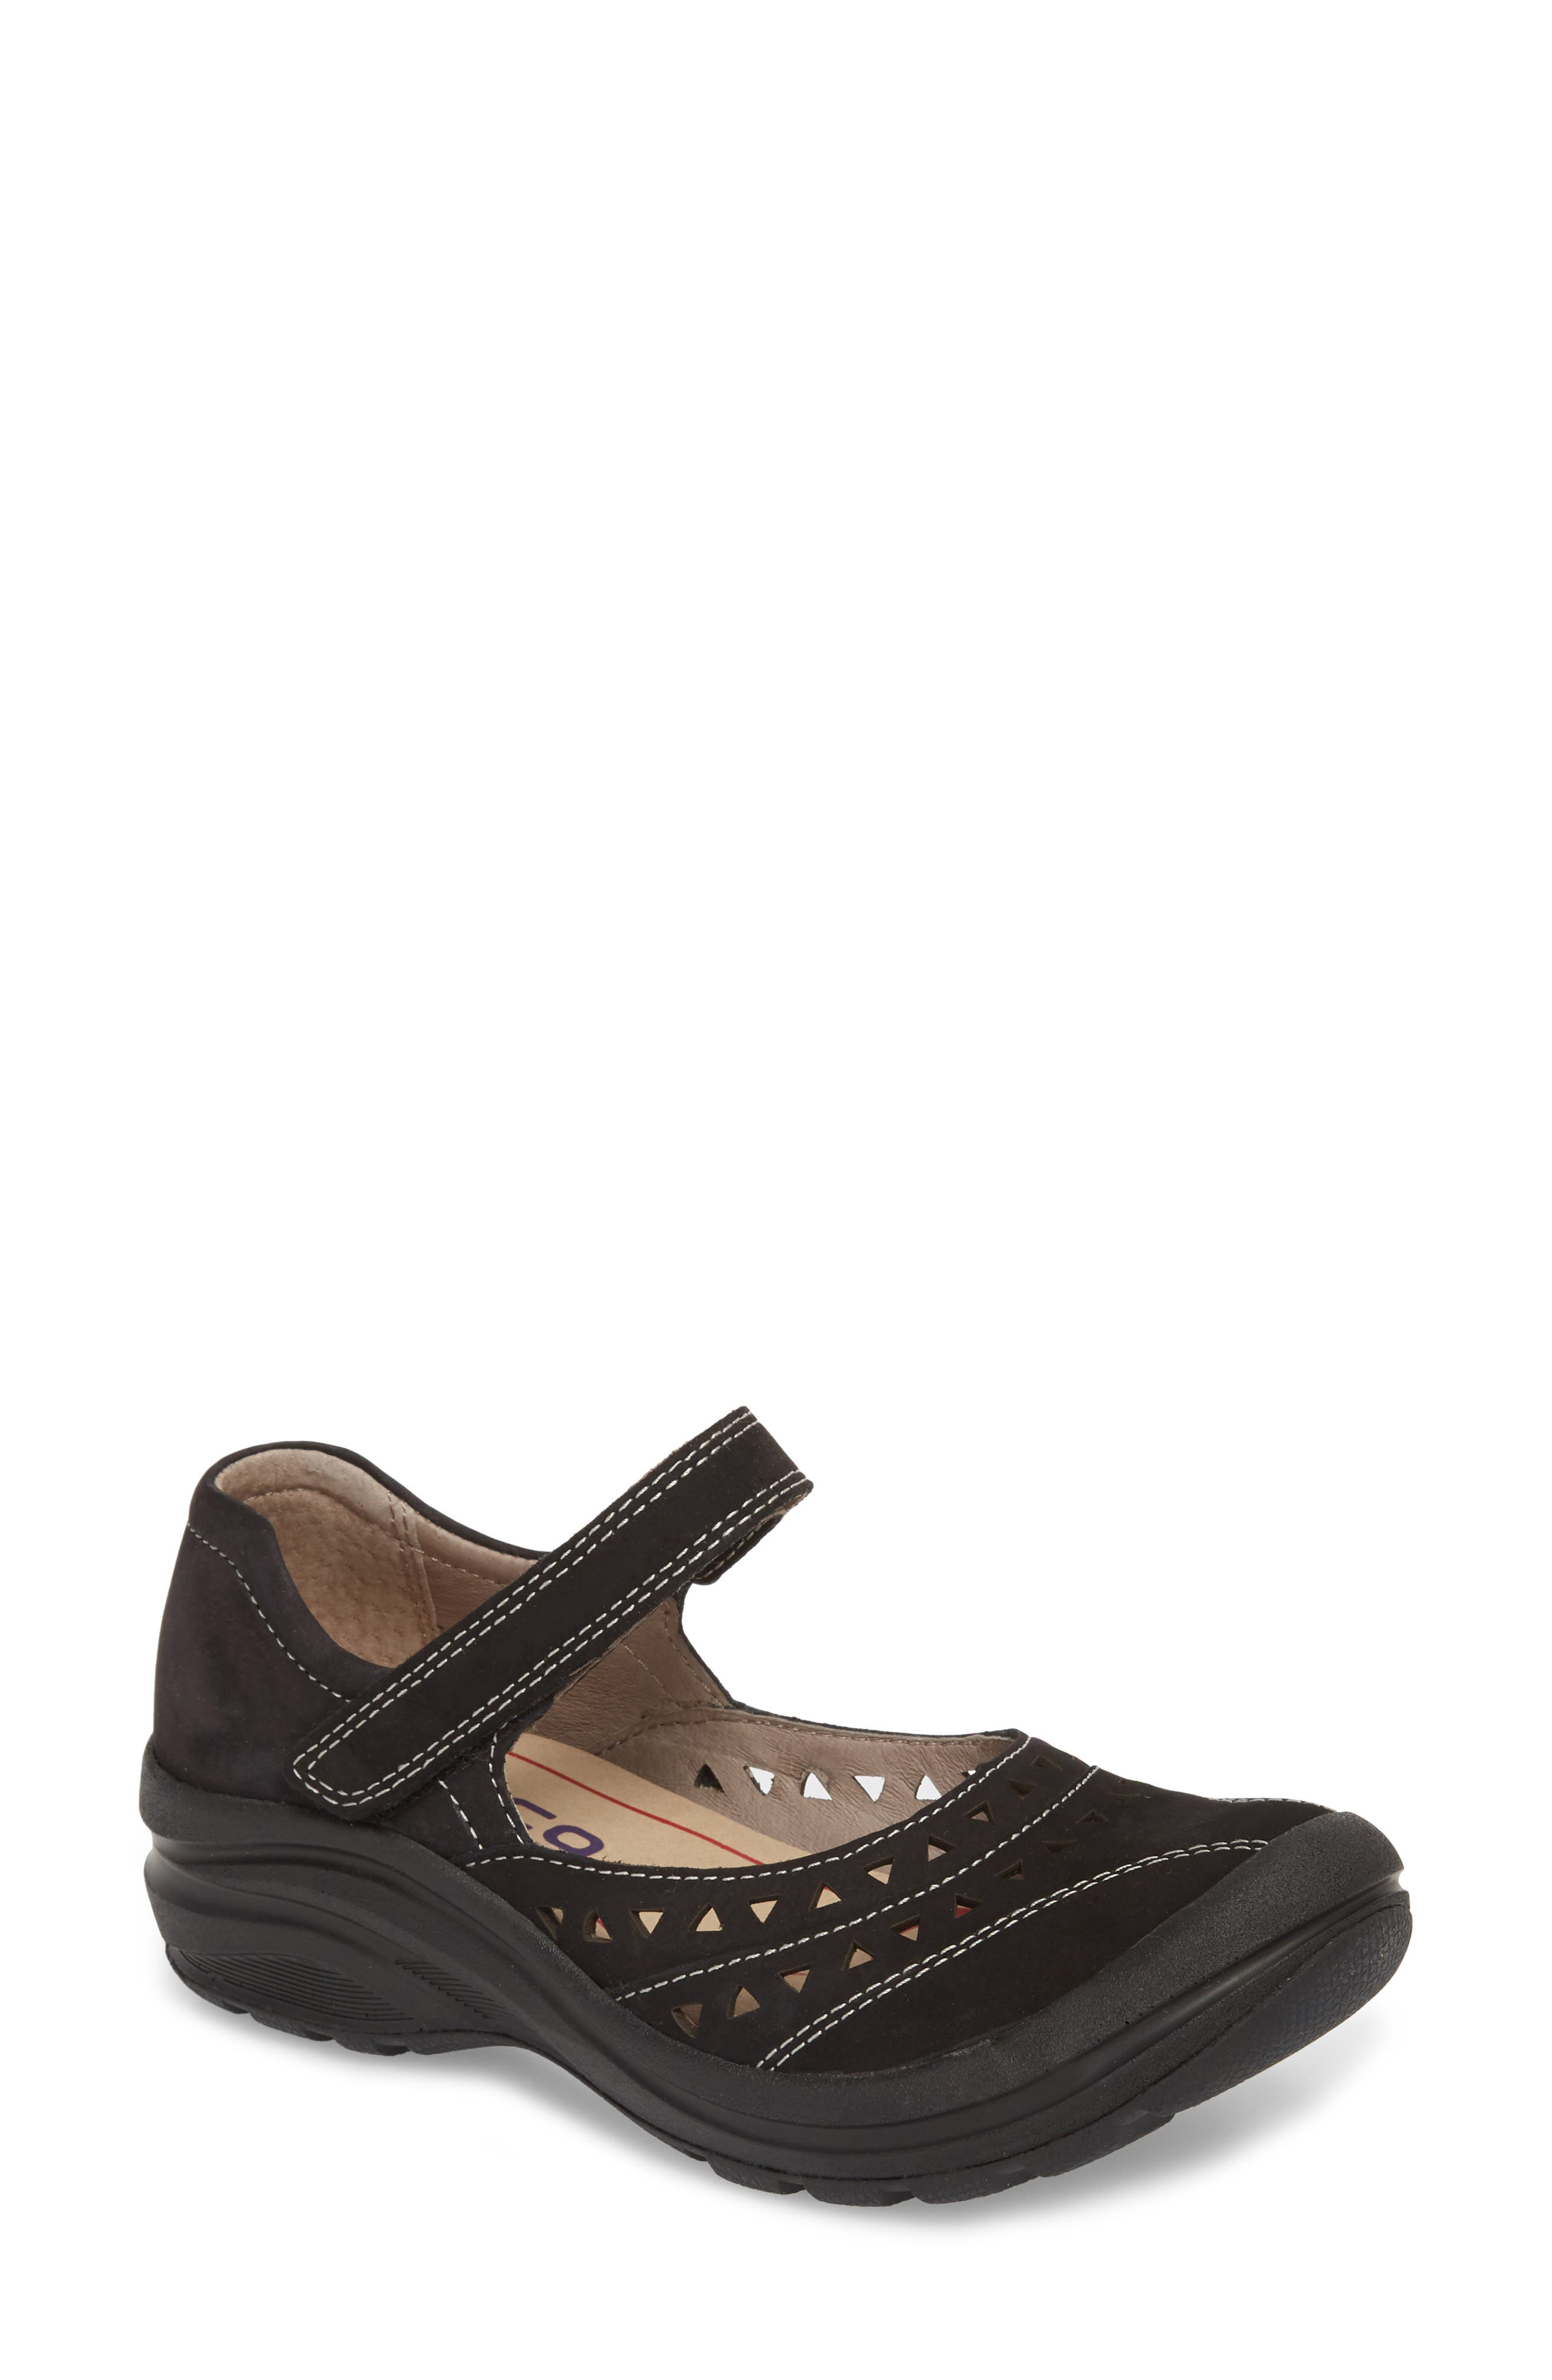 Matia Mary Jane Sneaker,                         Main,                         color, BLACK LEATHER